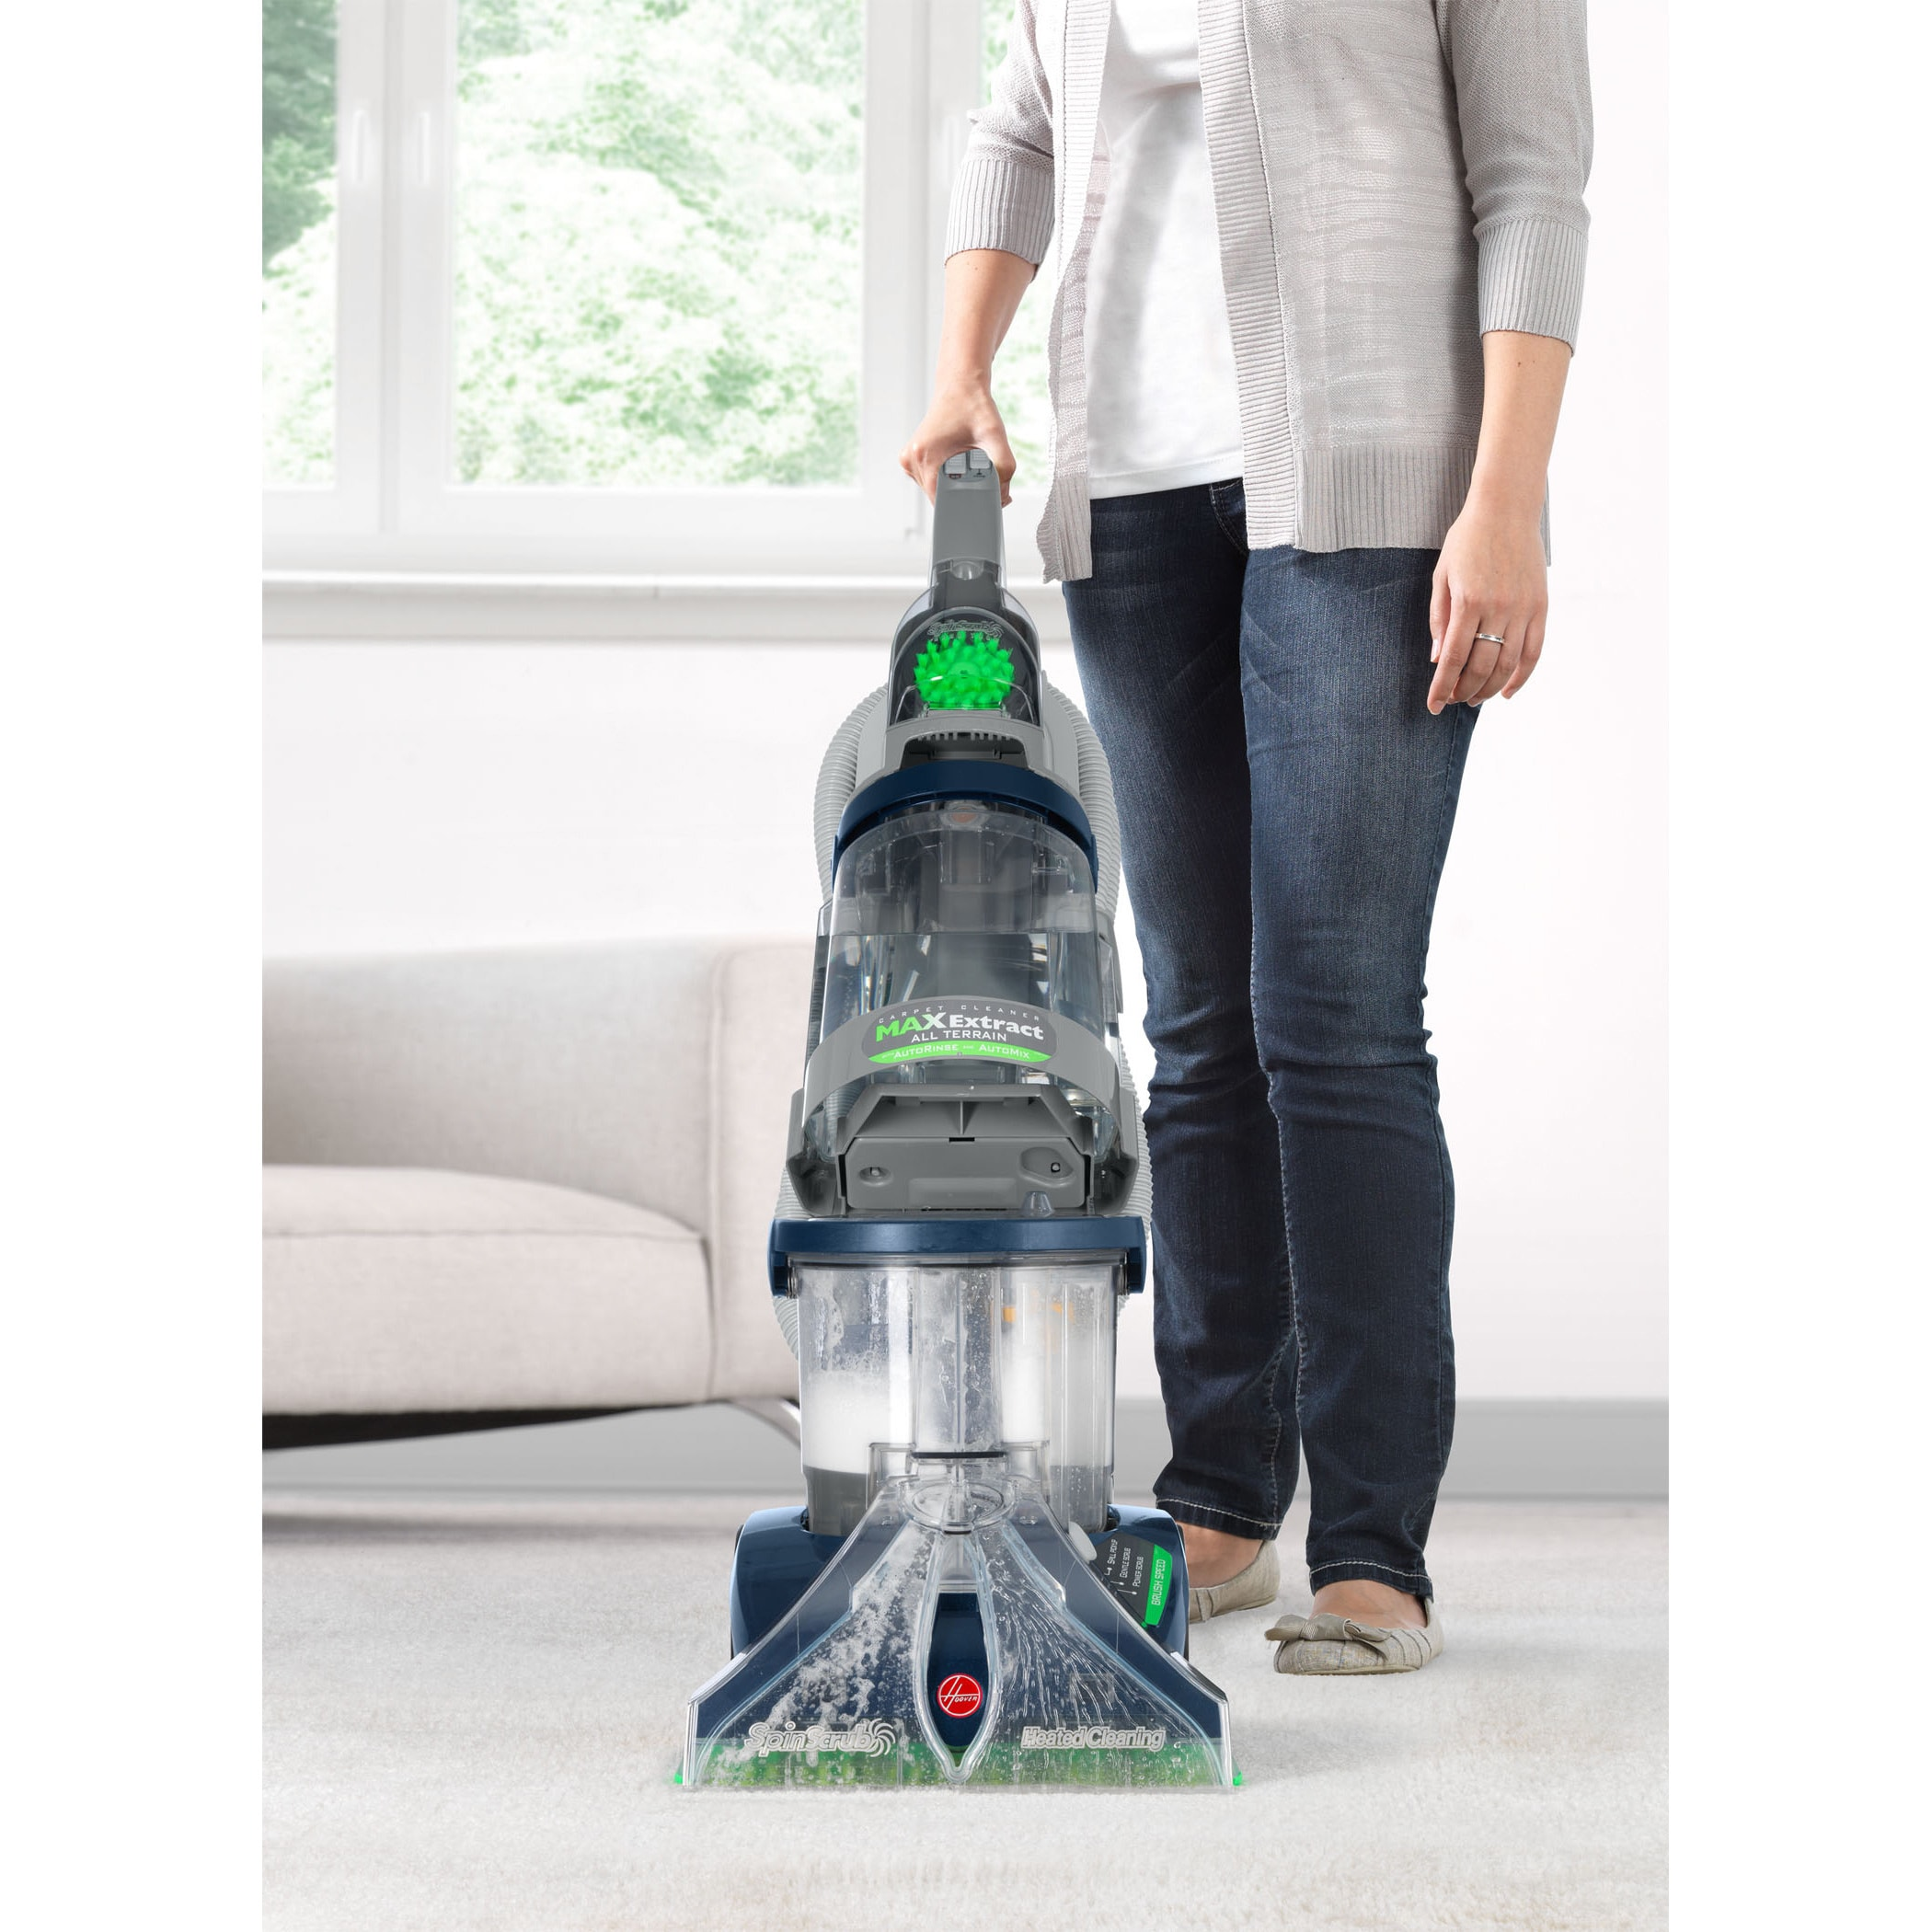 3f9e52c7119 Shop Hoover F7452-900 SteamVac All-terrain 6-brush Dual V Deep Cleaner -  Free Shipping Today - Overstock - 3055261